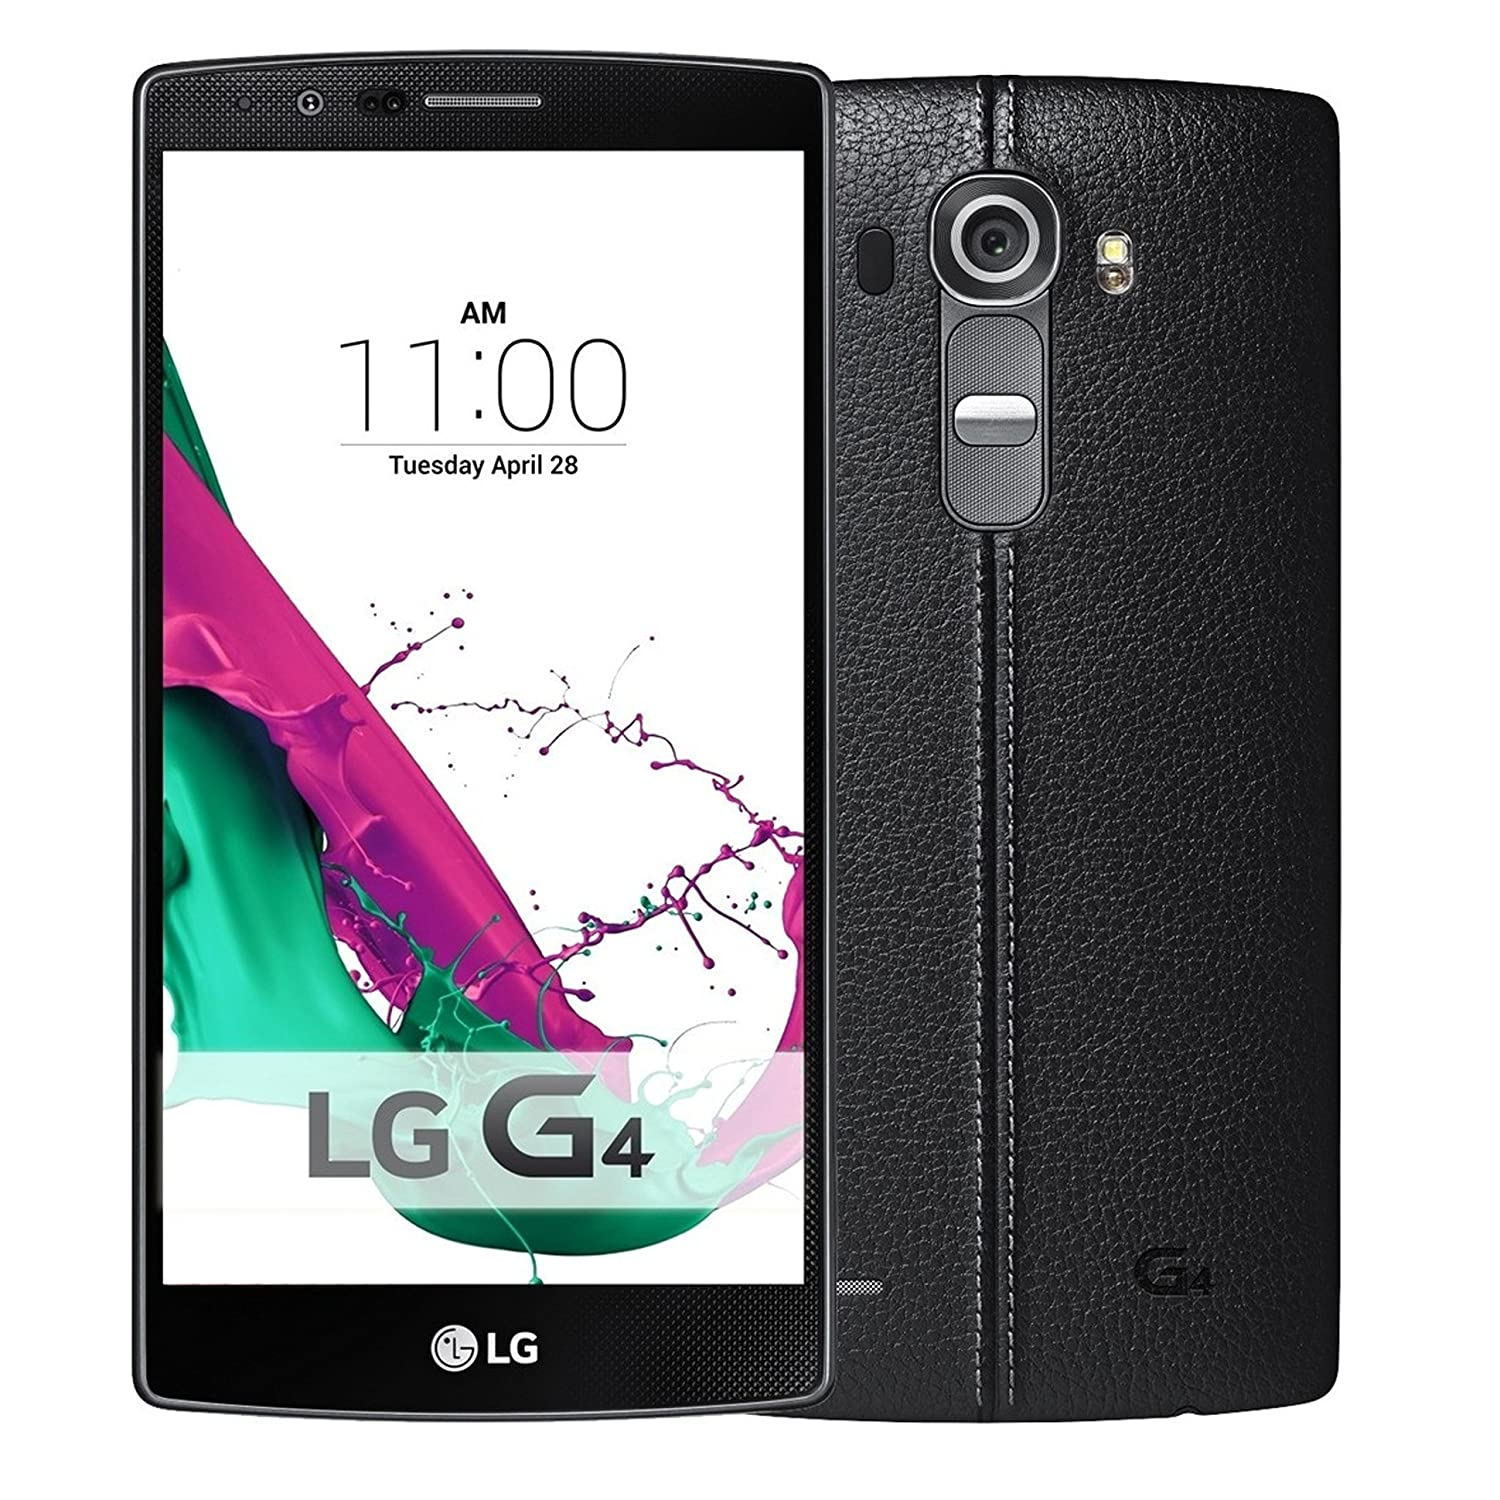 LG G4 US991LD 32GB Unlocked GSM Hexa-Core Android 5.1 Phone - Black Leather